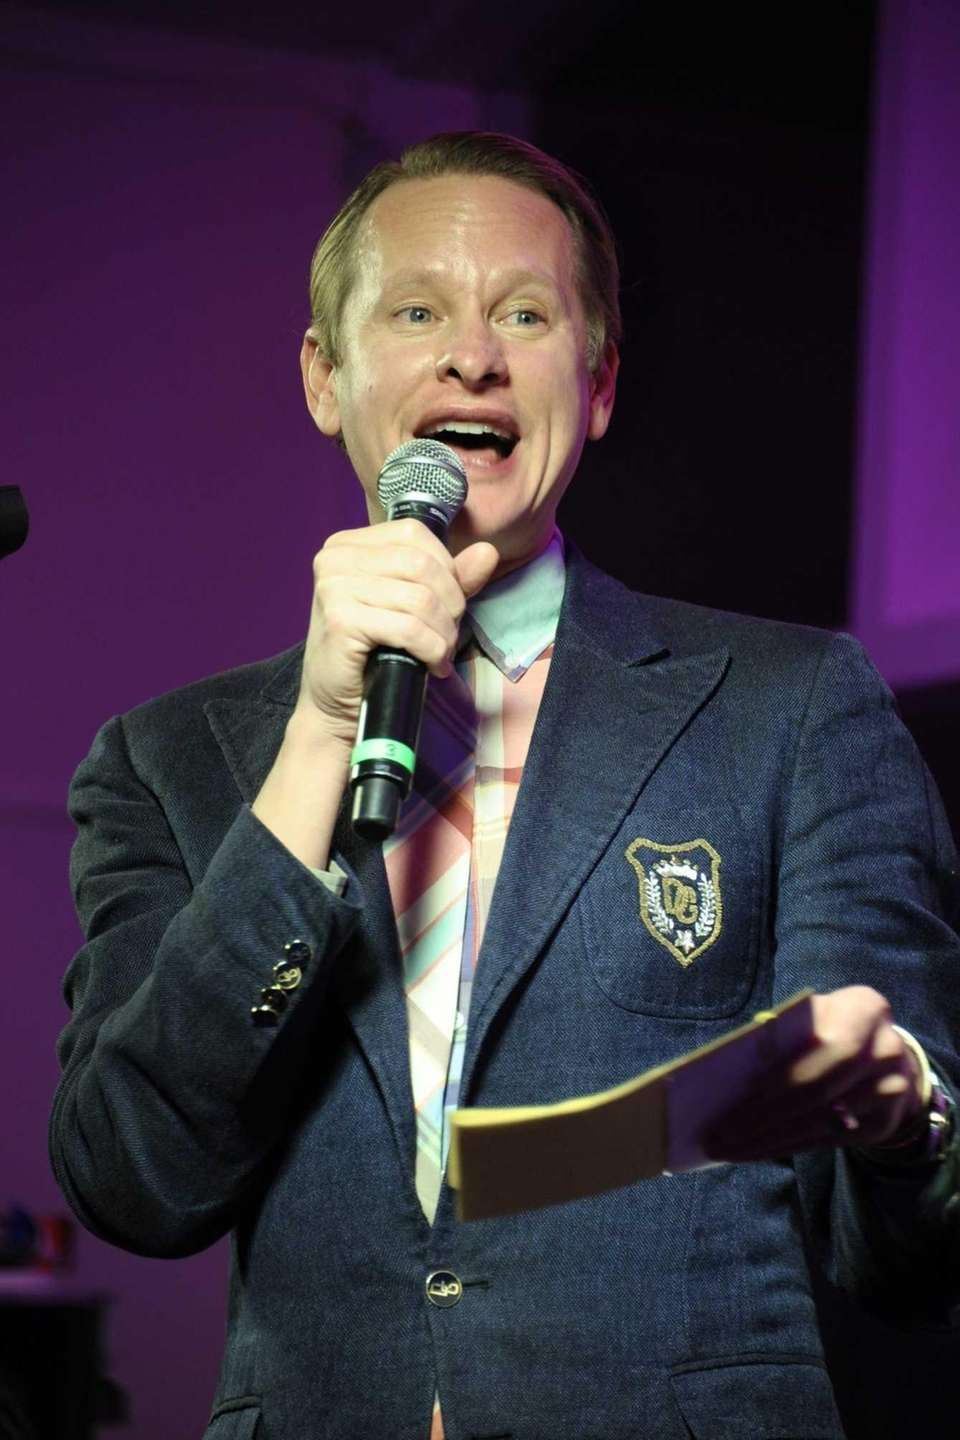 Carson Kressley was the MC at the Miracle